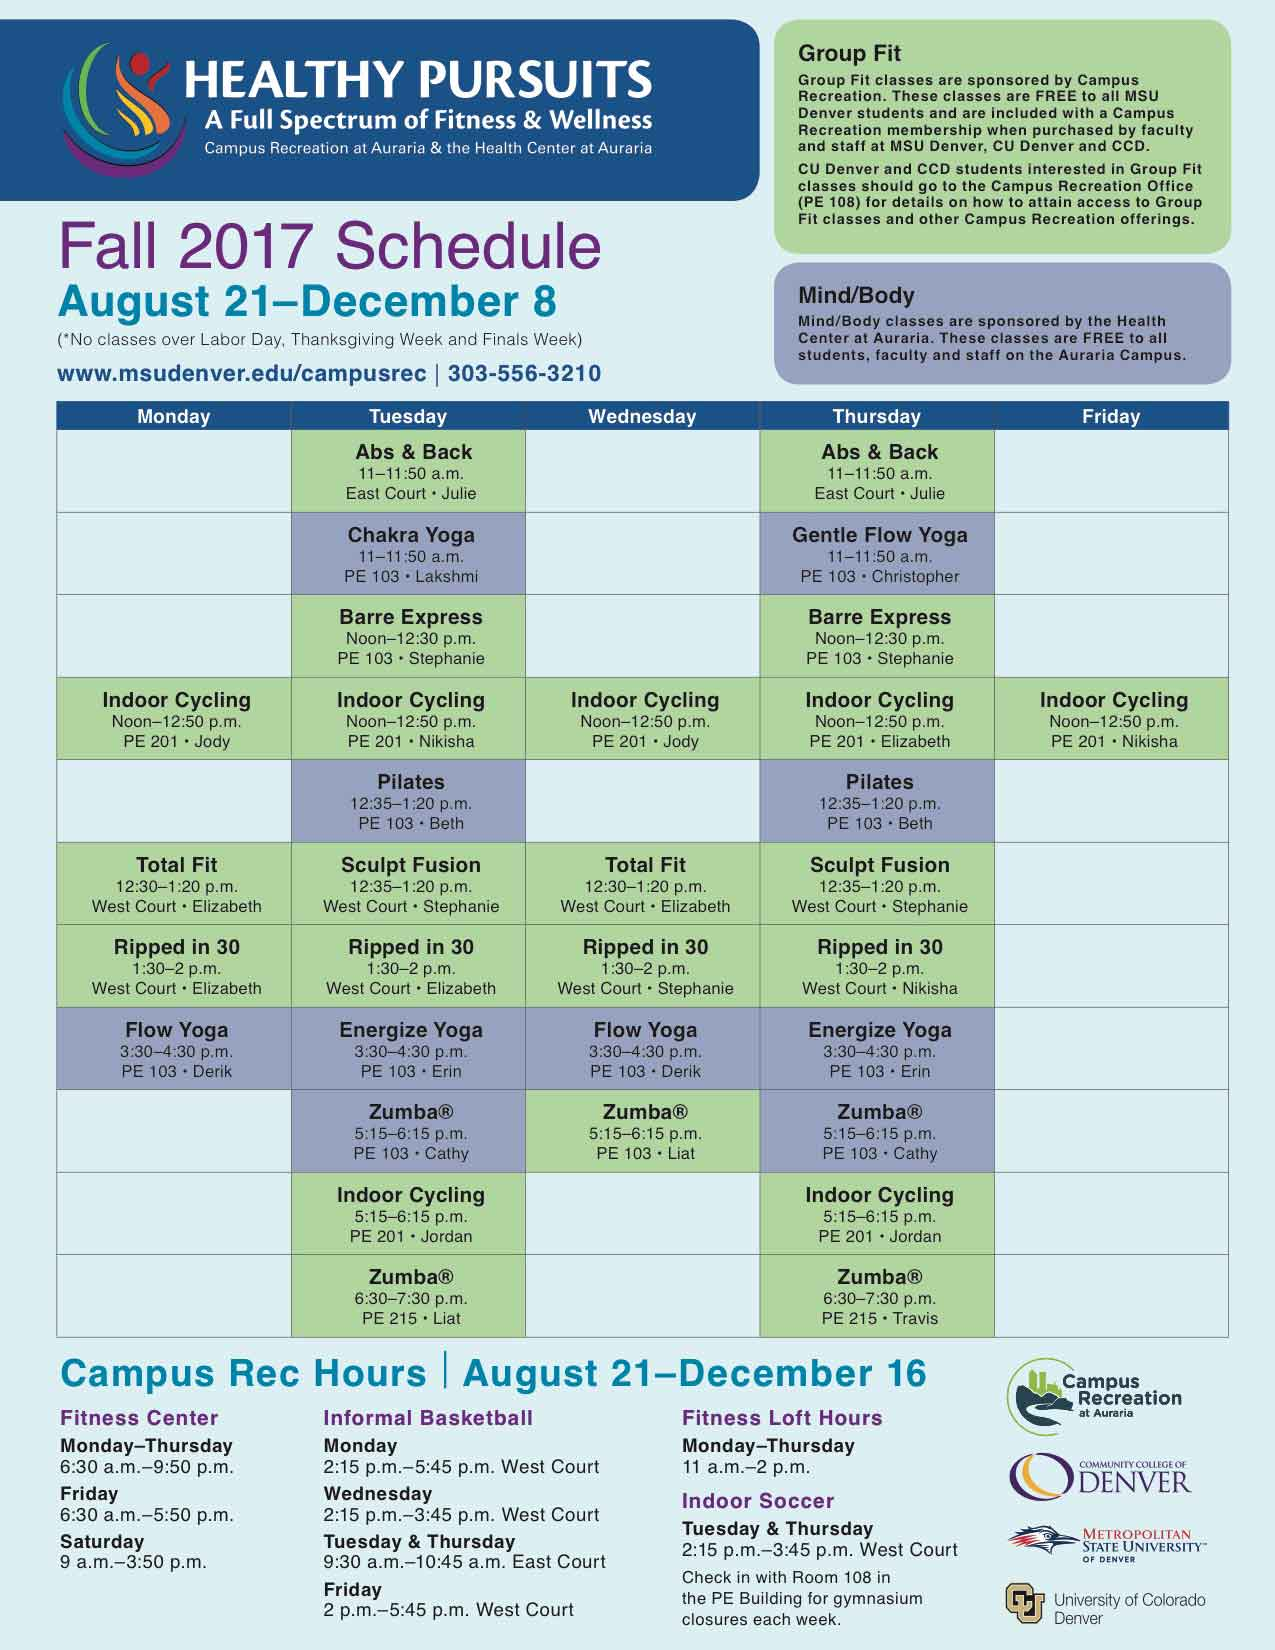 Fall 2017 Schedule Group Fit Group Fit classes are sponsored by Campus Recreation. These classes are FREE to all MSU Denver students and are included with a Campus Recreation membership when purchased by faculty and staff at MSU Denver, CU Denver and CCD. CU Denver and CCD students interested in Group Fit classes should go to the Campus Recreation Office (PE 108) for details on how to attain access to Group Fit classes and other Campus Recreation offerings. Mind/Body Mind/Body classes are sponsored by the Health Center at Auraria. These classes are FREE to all students, faculty and staff on the Auraria Campus. August 21–December 8 (*No classes over Labor Day, Thanksgiving Week and Finals Week) www.msudenver.edu/campusrec | 303-556-3210 Monday Tuesday Wednesday Thursday Friday Abs & Back 11–11:50 a.m. East Court • Julie Abs & Back 11–11:50 a.m. East Court • Julie Chakra Yoga 11–11:50 a.m. PE 103 • Lakshmi Gentle Flow Yoga 11–11:50 a.m. PE 103 • Christopher Barre Express Noon–12:30 p.m. PE 103 • Stephanie Barre Express Noon–12:30 p.m. PE 103 • Stephanie Indoor Cycling Noon–12:50 p.m. PE 201 • Jody Indoor Cycling Noon–12:50 p.m. PE 201 • Nikisha Indoor Cycling Noon–12:50 p.m. PE 201 • Jody Indoor Cycling Noon–12:50 p.m. PE 201 • Elizabeth Indoor Cycling Noon–12:50 p.m. PE 201 • Nikisha Pilates 12:35–1:20 p.m. PE 103 • Beth Pilates 12:35–1:20 p.m. PE 103 • Beth Total Fit 12:30–1:20 p.m. West Court • Elizabeth Sculpt Fusion 12:35–1:20 p.m. West Court • Stephanie Total Fit 12:30–1:20 p.m. West Court • Elizabeth Sculpt Fusion 12:35–1:20 p.m. West Court • Stephanie Ripped in 30 1:30–2 p.m. West Court • Elizabeth Ripped in 30 1:30–2 p.m. West Court • Elizabeth Ripped in 30 1:30–2 p.m. West Court • Stephanie Ripped in 30 1:30–2 p.m. West Court • Nikisha Flow Yoga 3:30–4:30 p.m. PE 103 • Derik Energize Yoga 3:30–4:30 p.m. PE 103 • Erin Flow Yoga 3:30–4:30 p.m. PE 103 • Derik Energize Yoga 3:30–4:30 p.m. PE 103 • Erin Zumba® 5:15–6:15 p.m. PE 103 • Cathy Zumba® 5:15–6:15 p.m. P